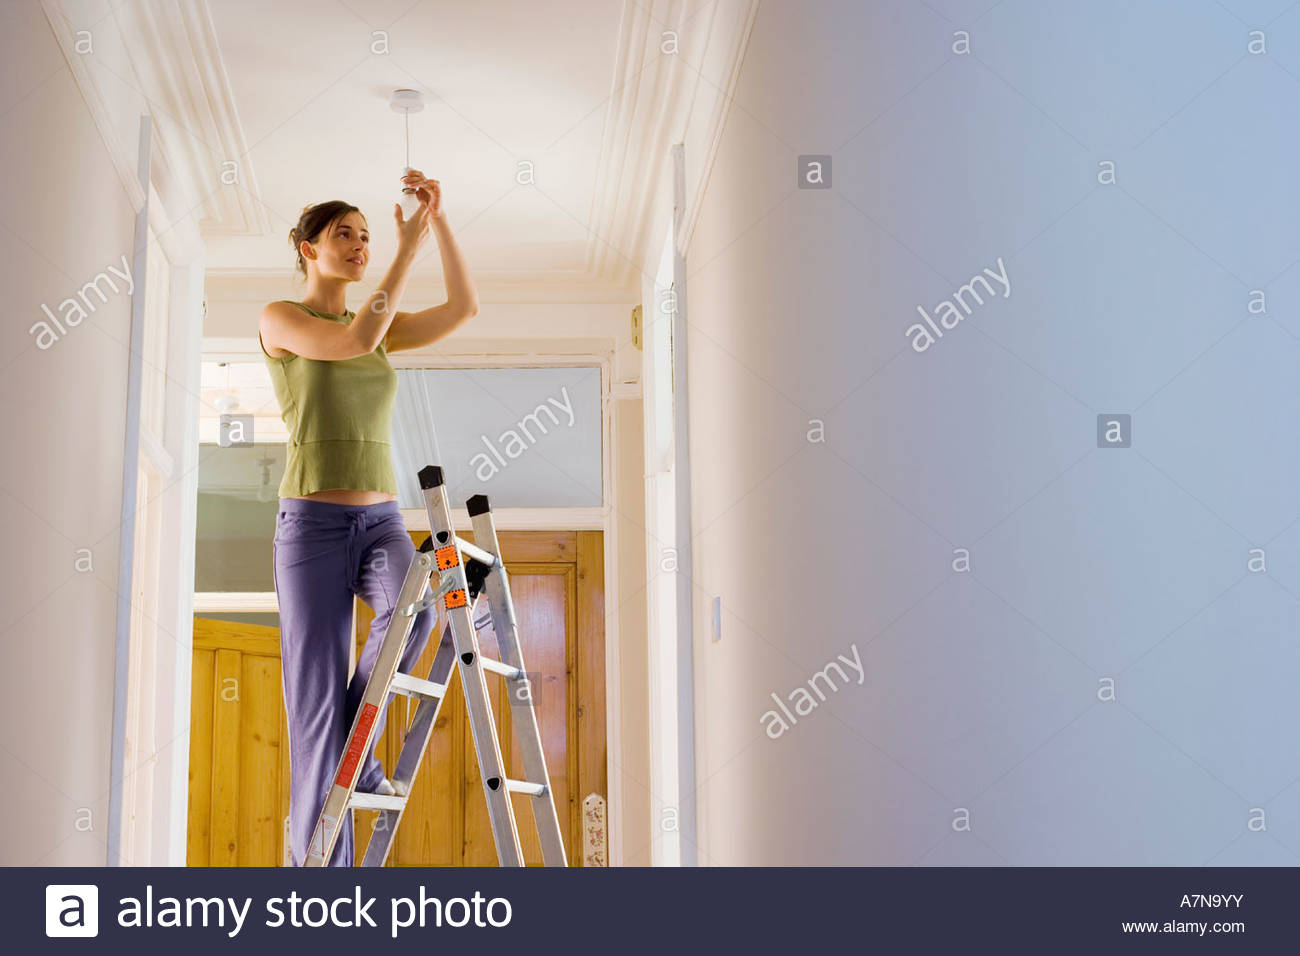 Woman doing DIY at home standing on step ladder attaching light bulb to ceiling fixture smiling - Stock Image